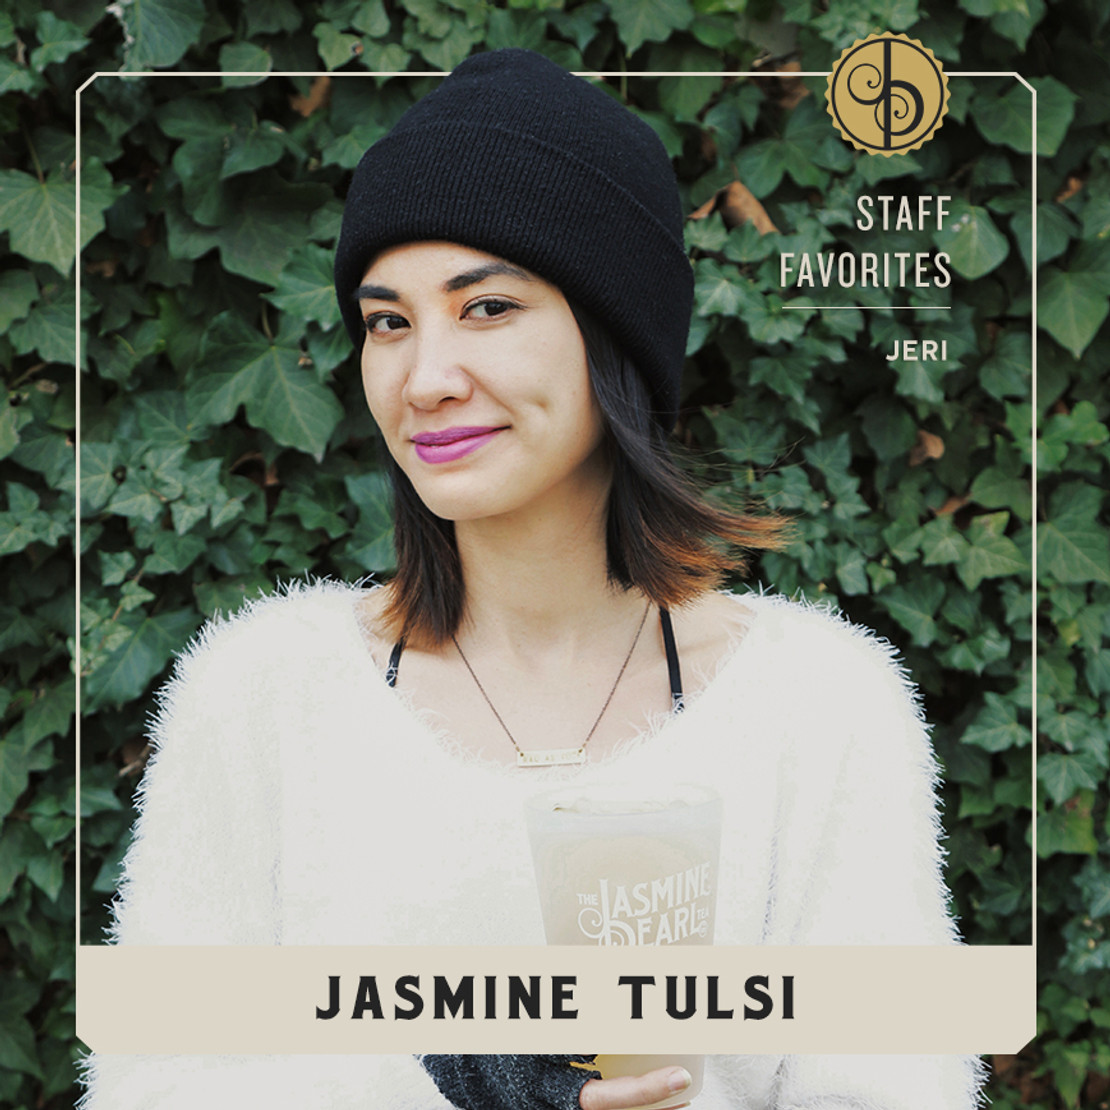 Staff Favorites: Jeri & Jasmine Tulsi